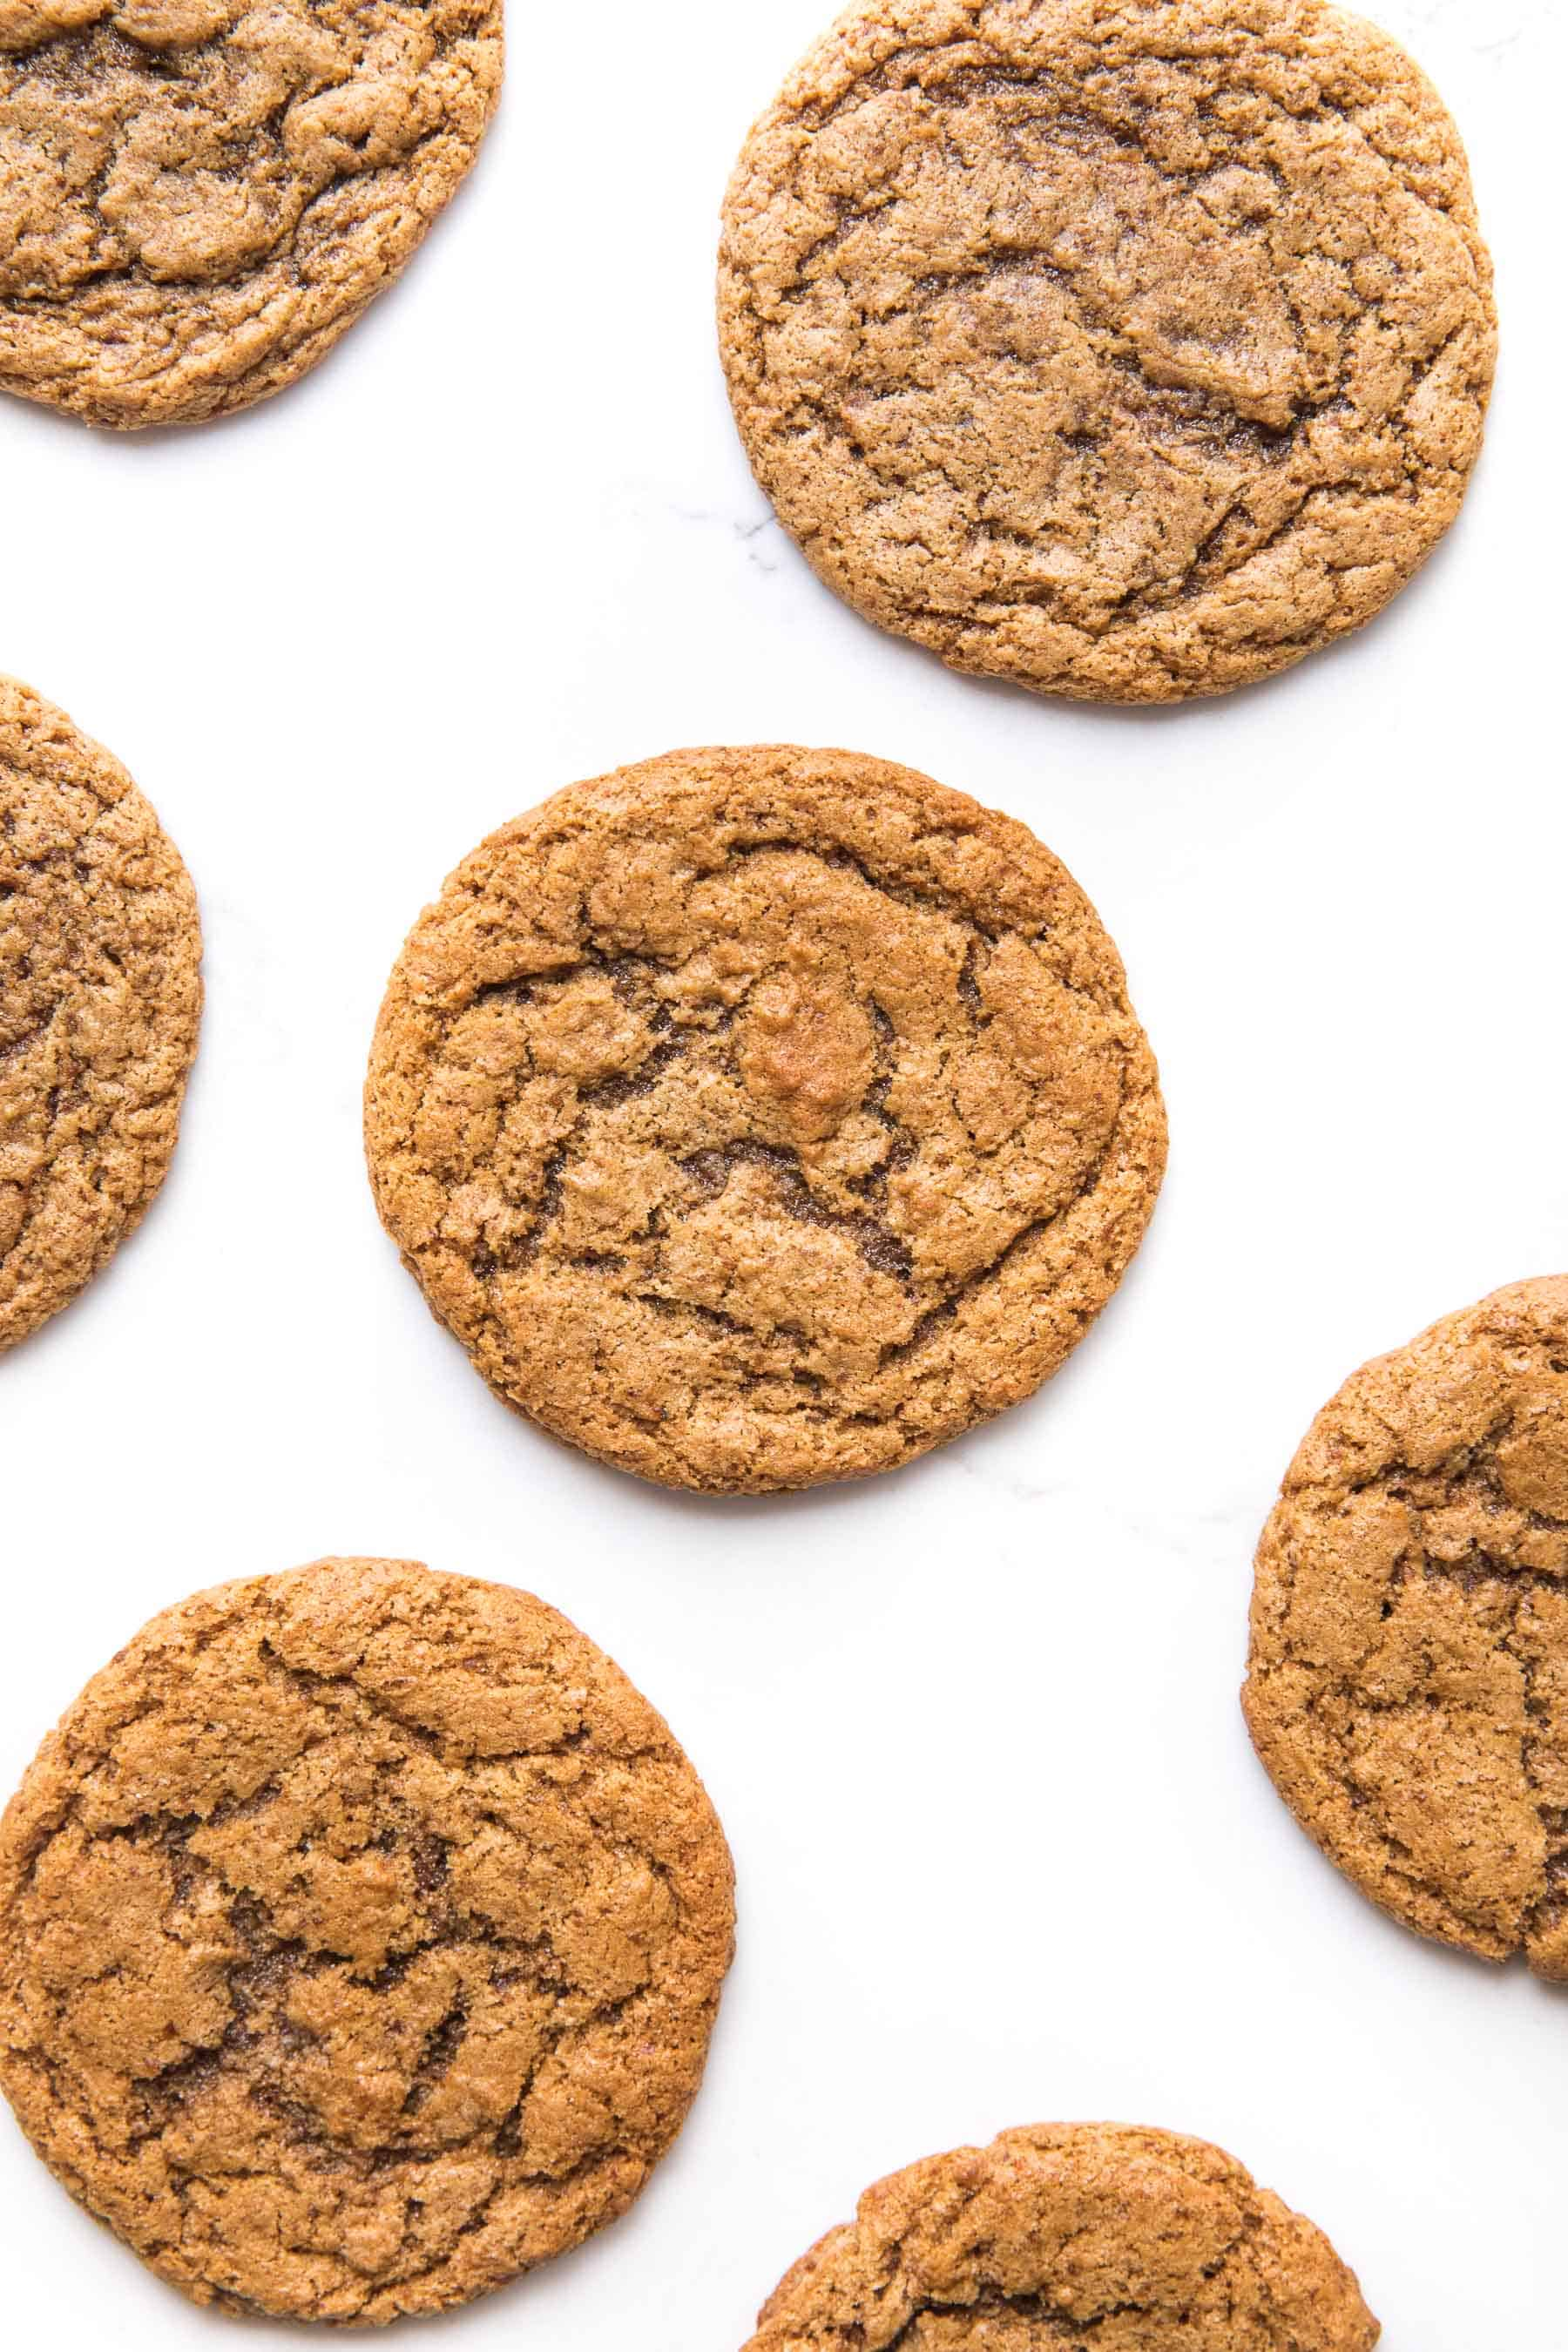 almond butter cookies on a white background